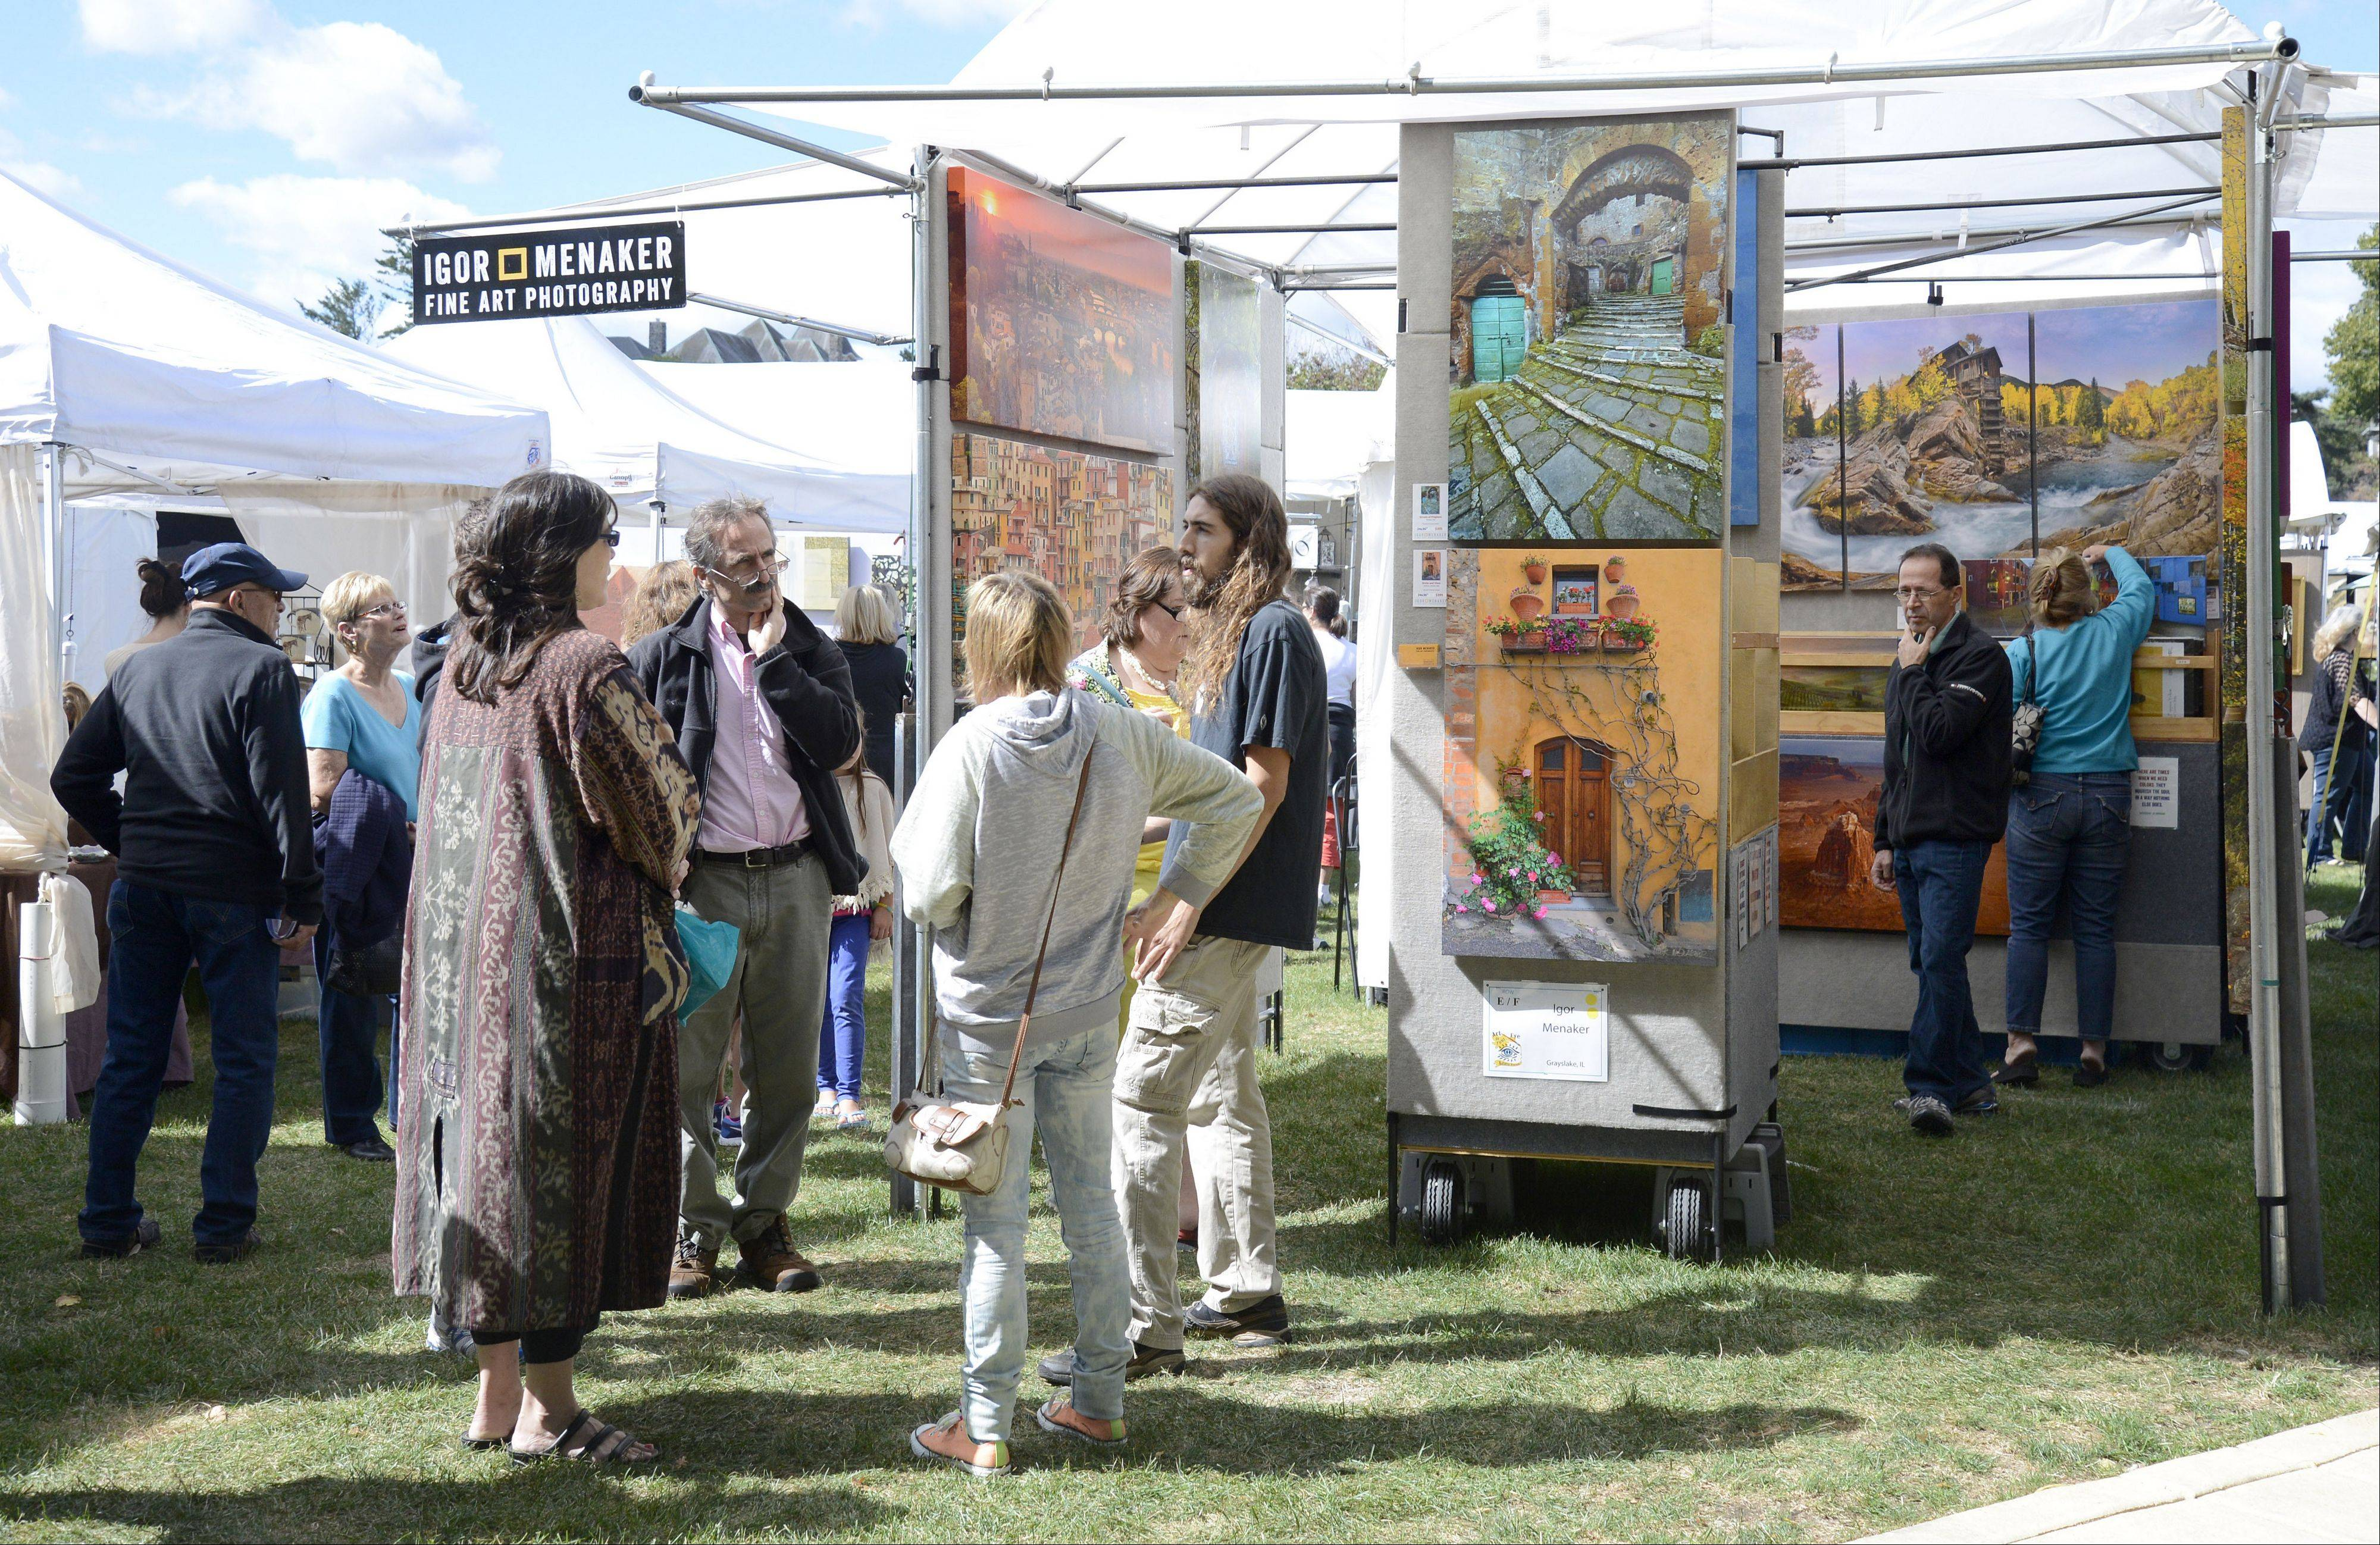 People gather at Igor Menaker's tent at the Art in Your Eye festival Saturday in Batavia. Menaker, a photographer from Grayslake, took part in the festival for first time. He said his favorite places to photograph are Colorado and Italy's Tuscany region.